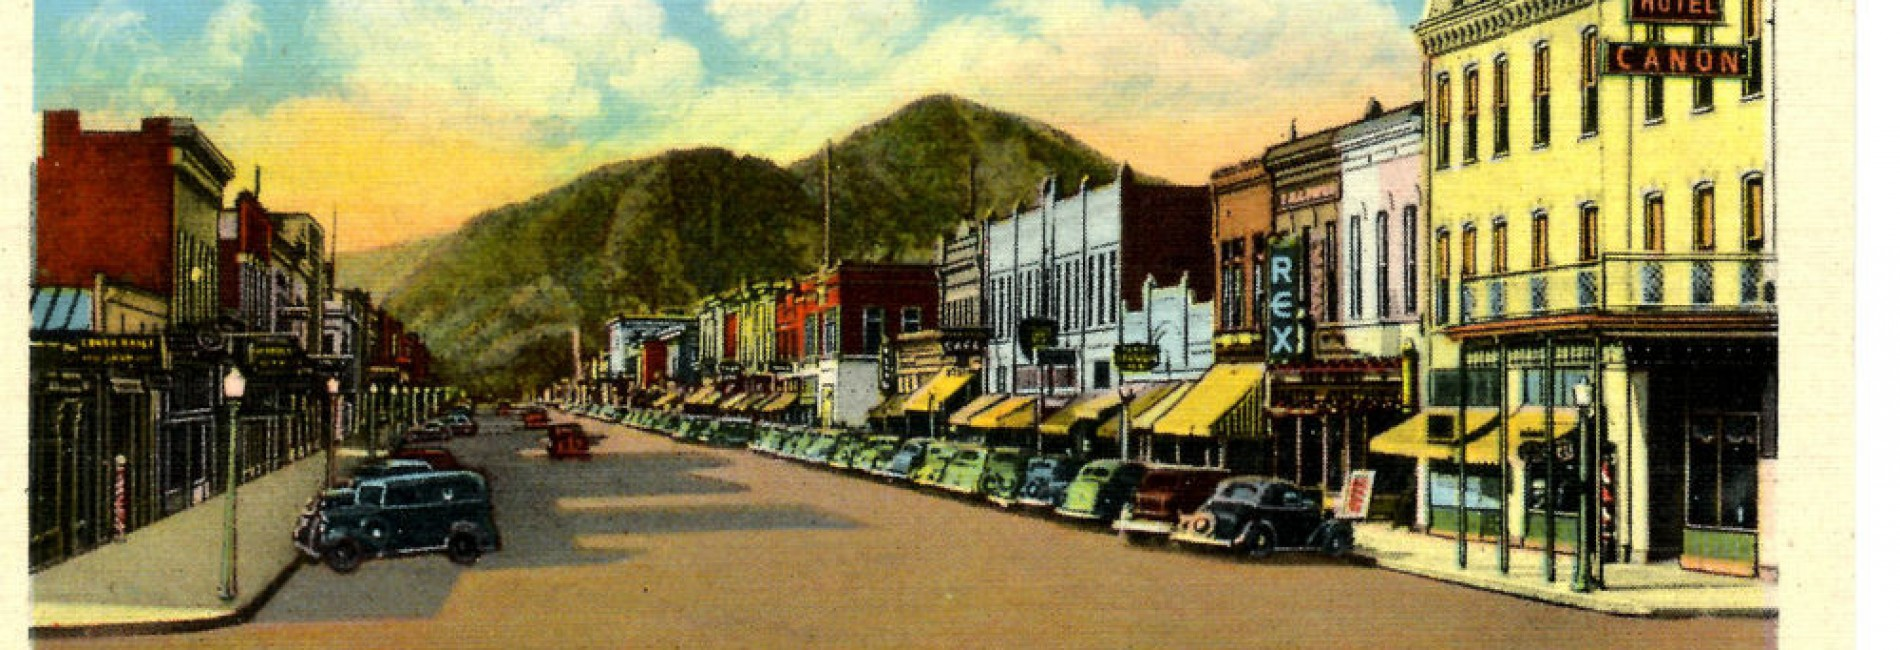 canon city postcard